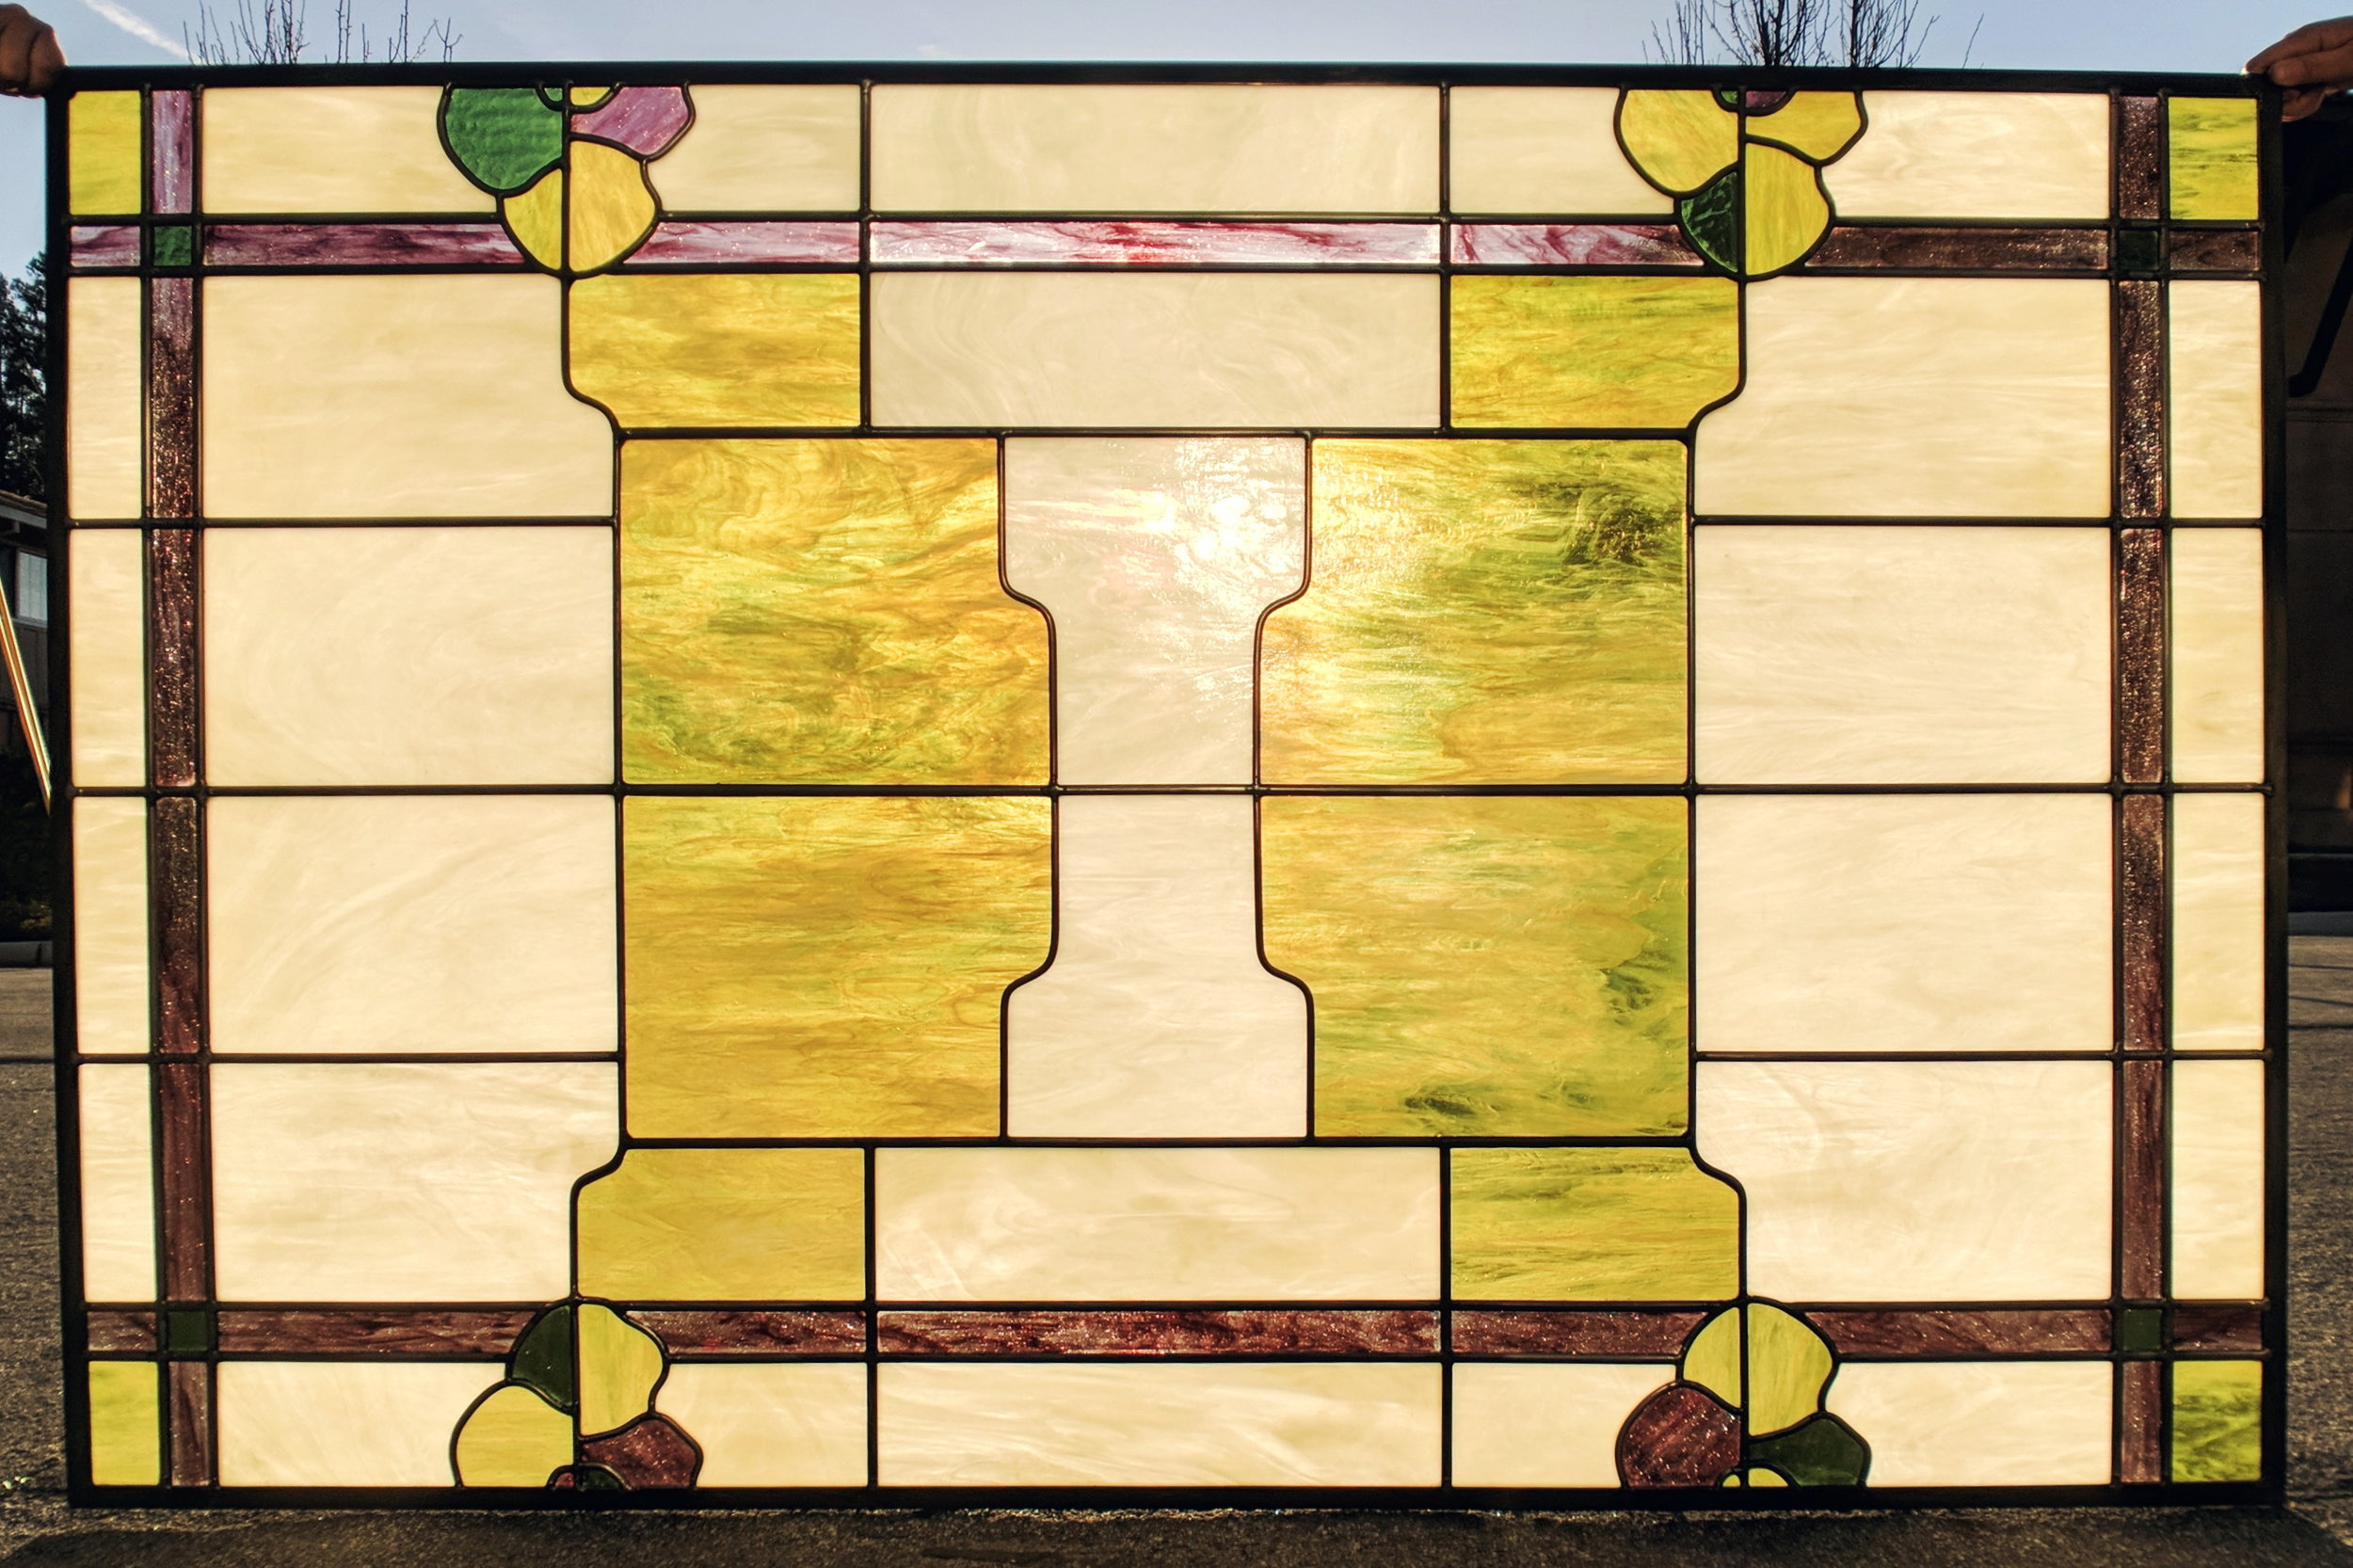 stained glass leaded glass design legacy glass studios menlo park bay area california skylight craftsman cloudlift manly office stained glass.jpg